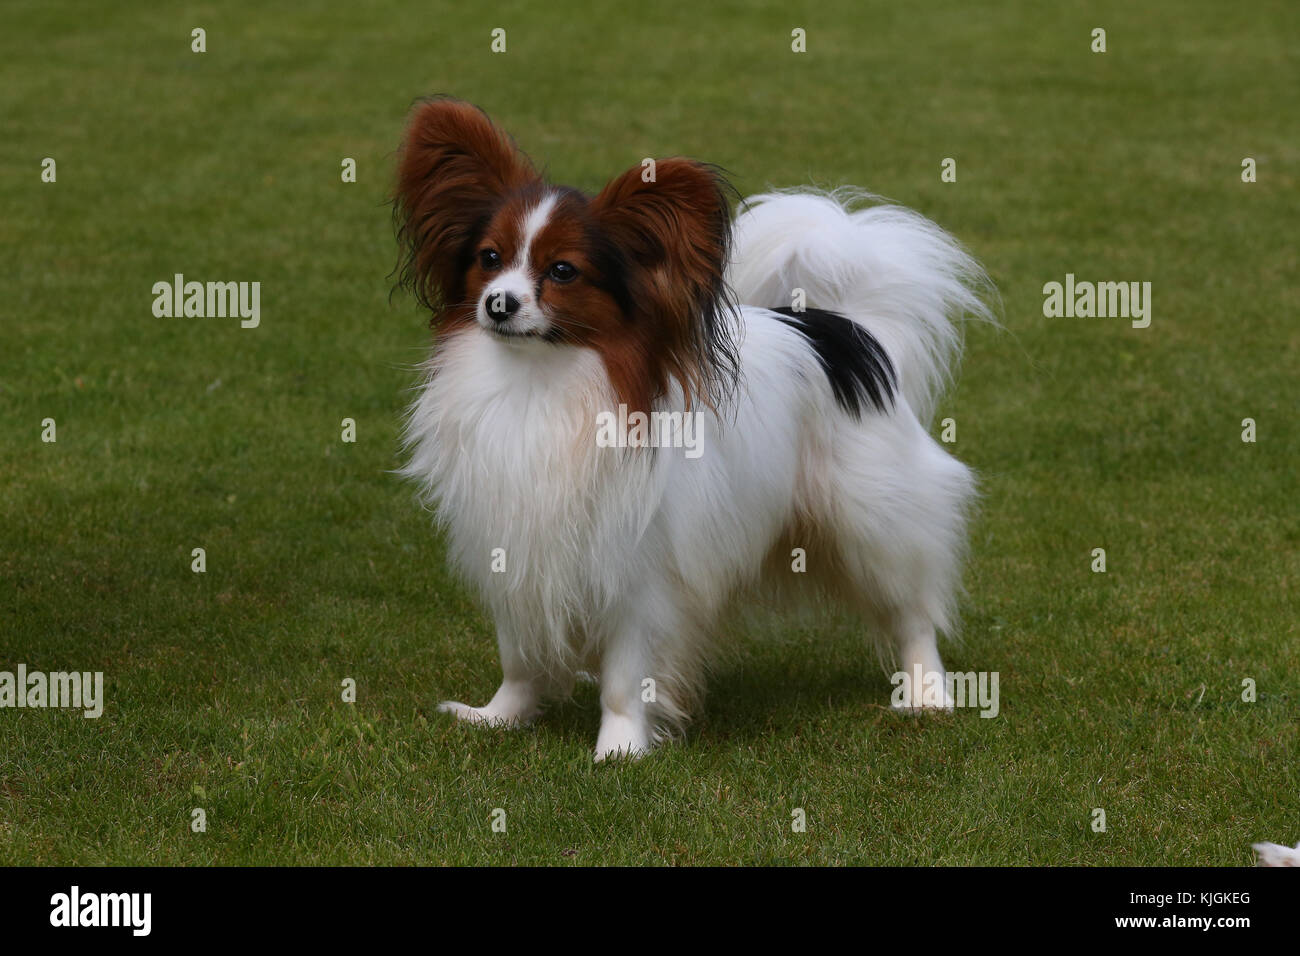 Papillon, Continental Toy Spaniel Schmetterling Hund Stockbild